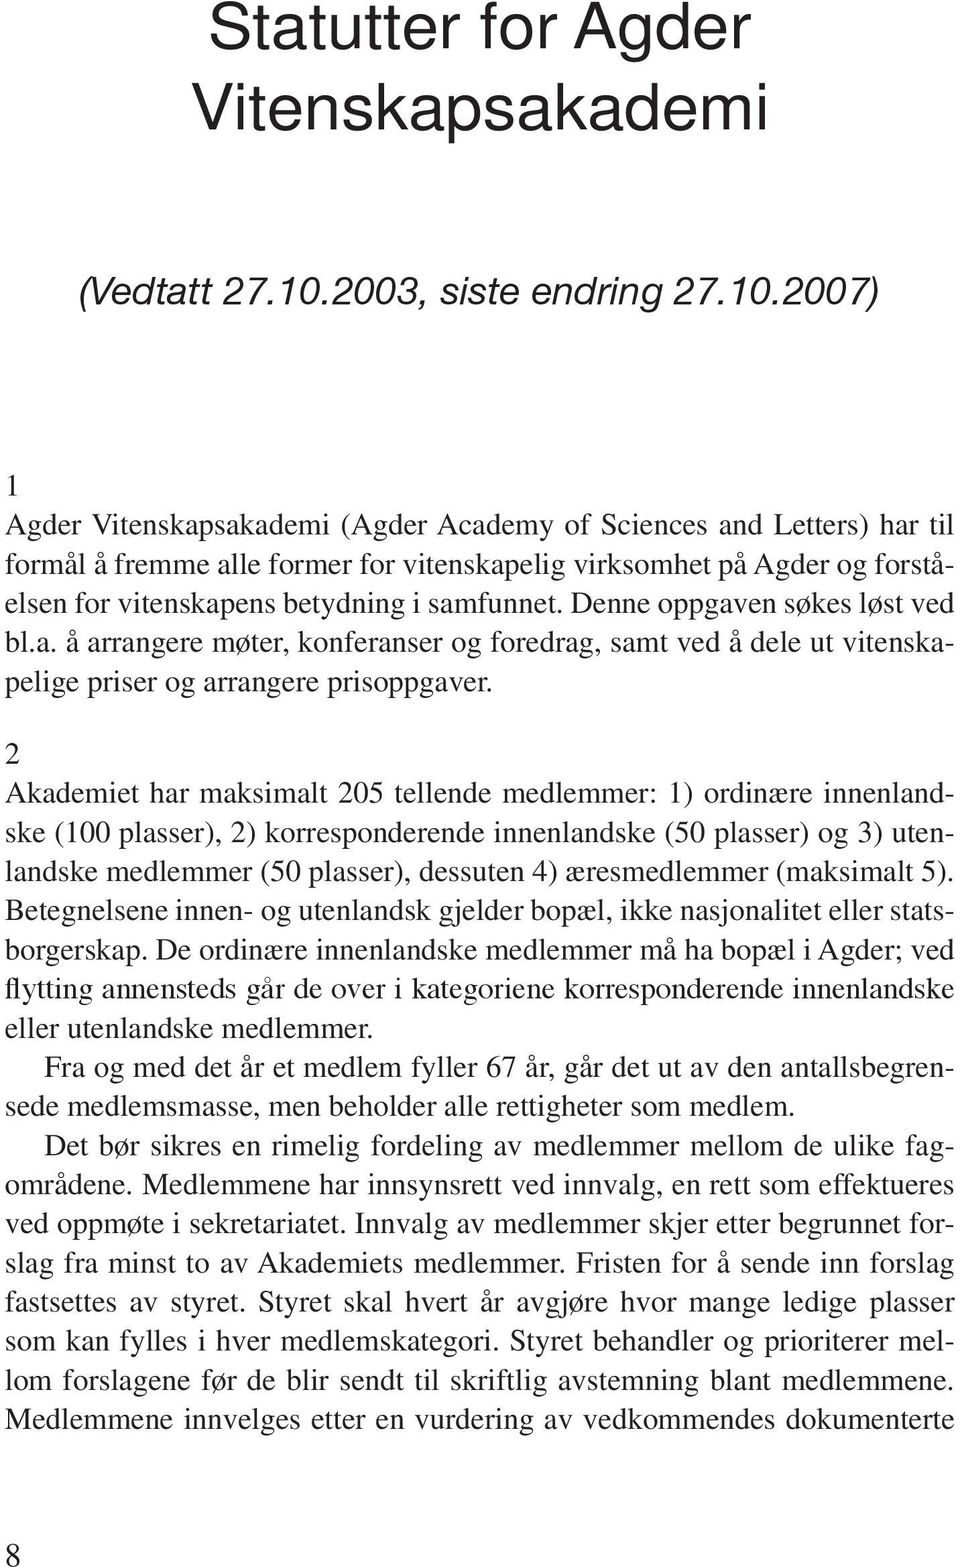 2007) 1 Agder Vitenskapsakademi (Agder Academy of Sciences and Letters) har til formål å fremme alle former for vitenskapelig virksomhet på Agder og forståelsen for vitenskapens betydning i samfunnet.